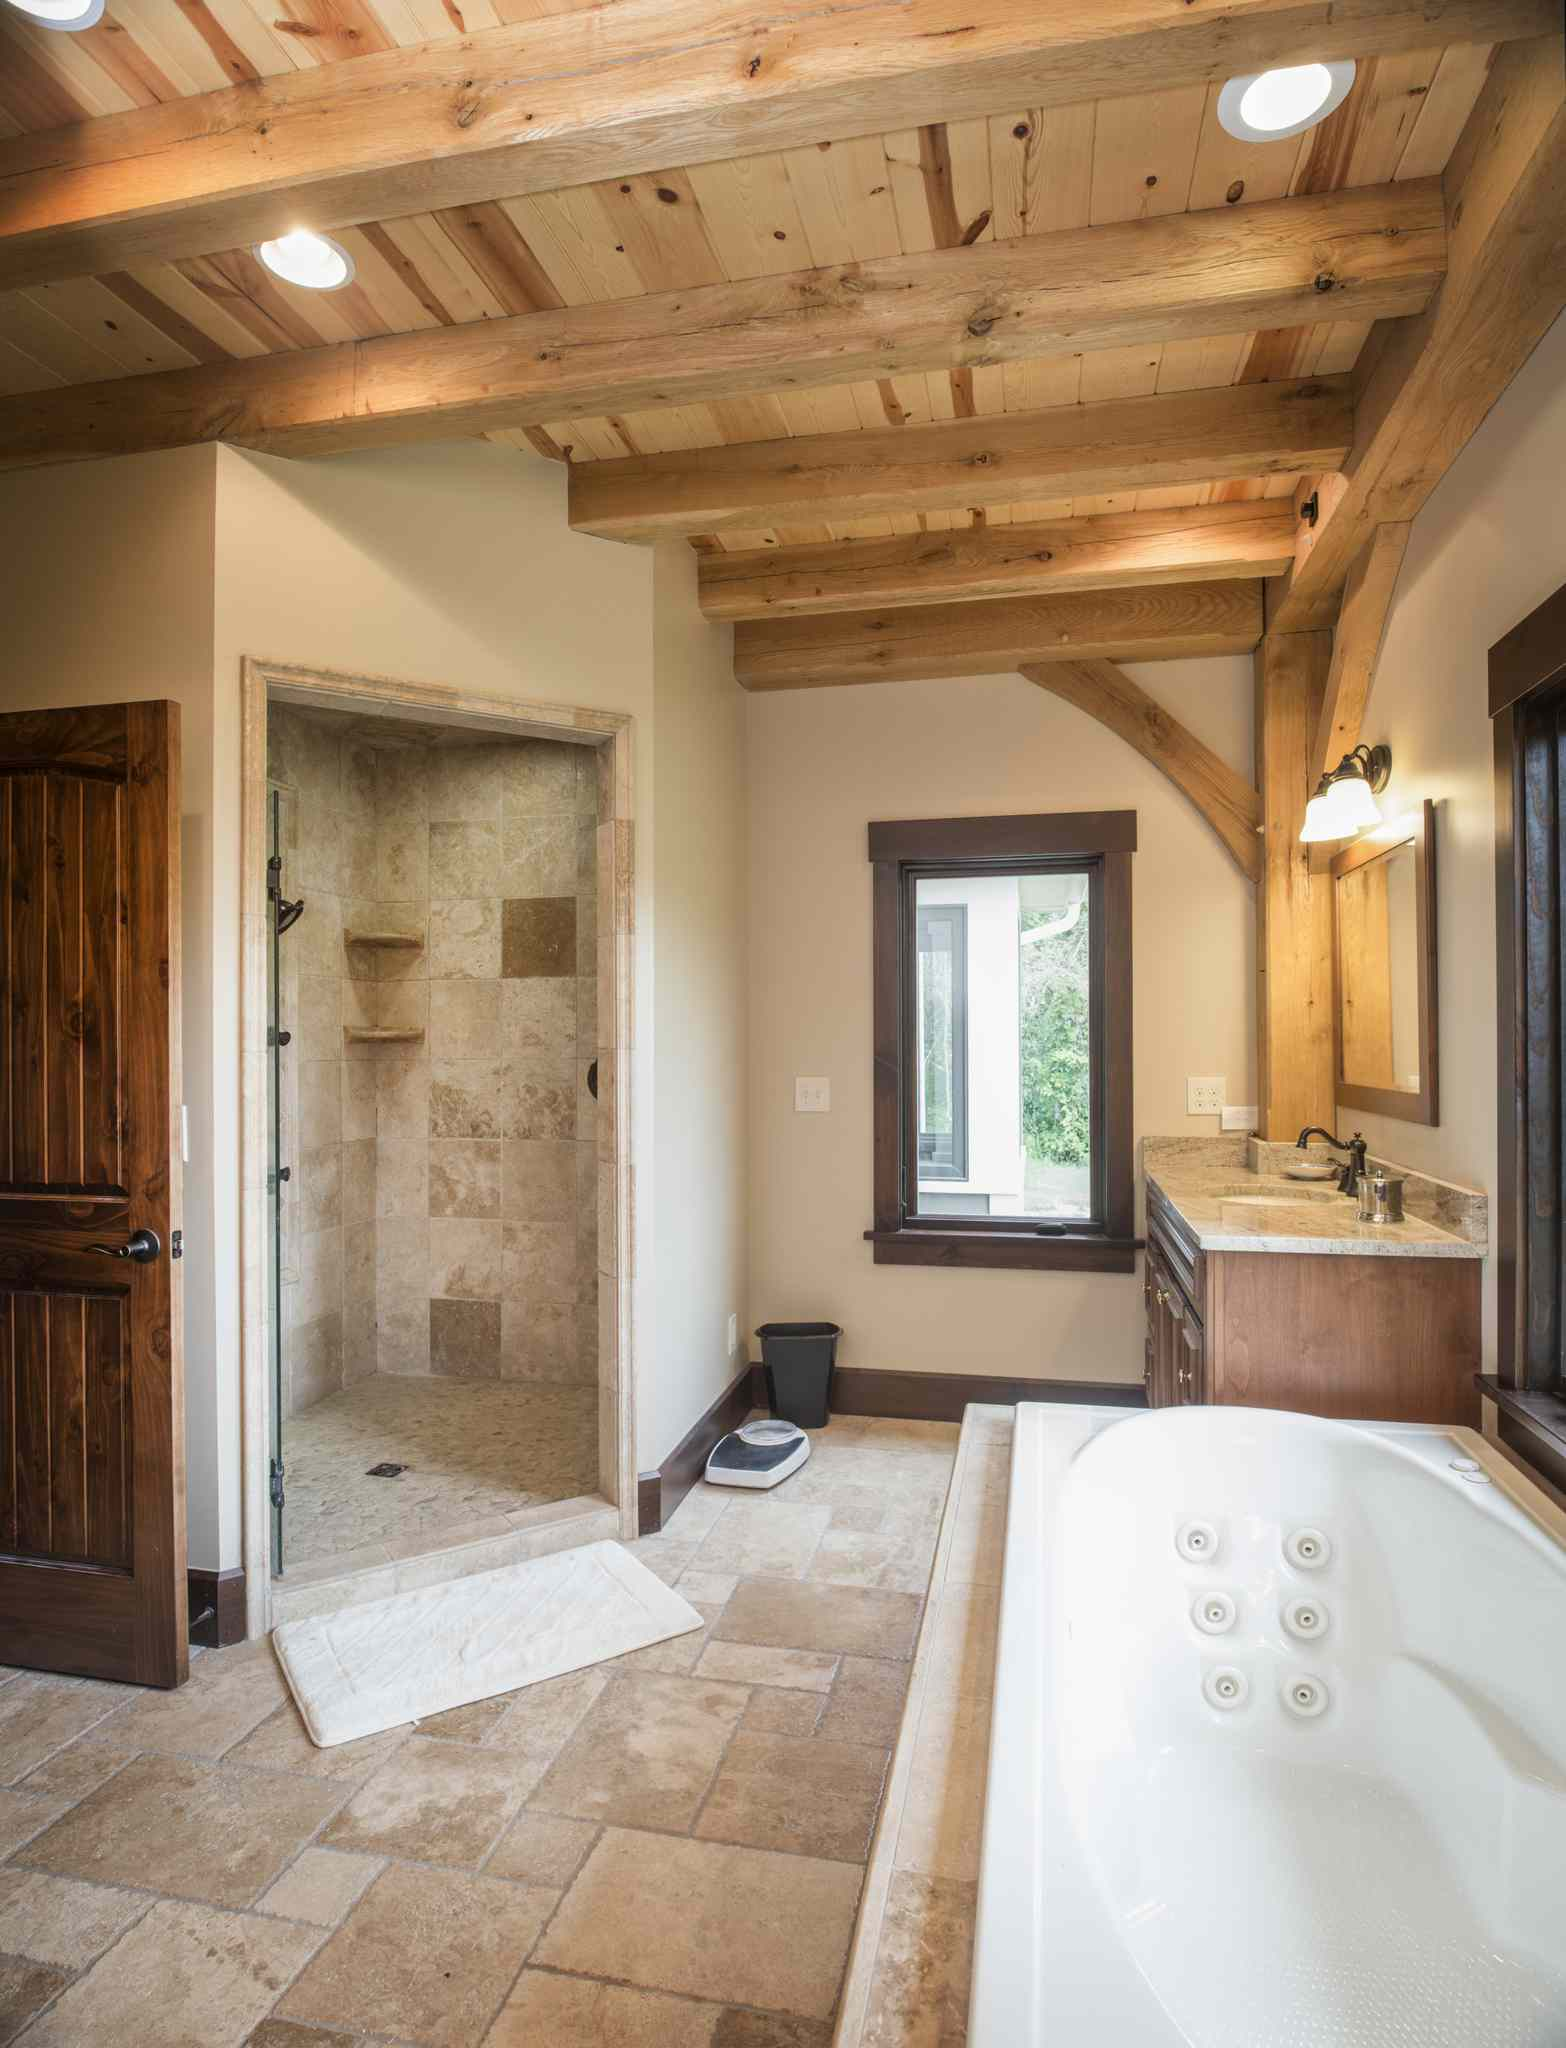 Bathroom with wooden ceiling